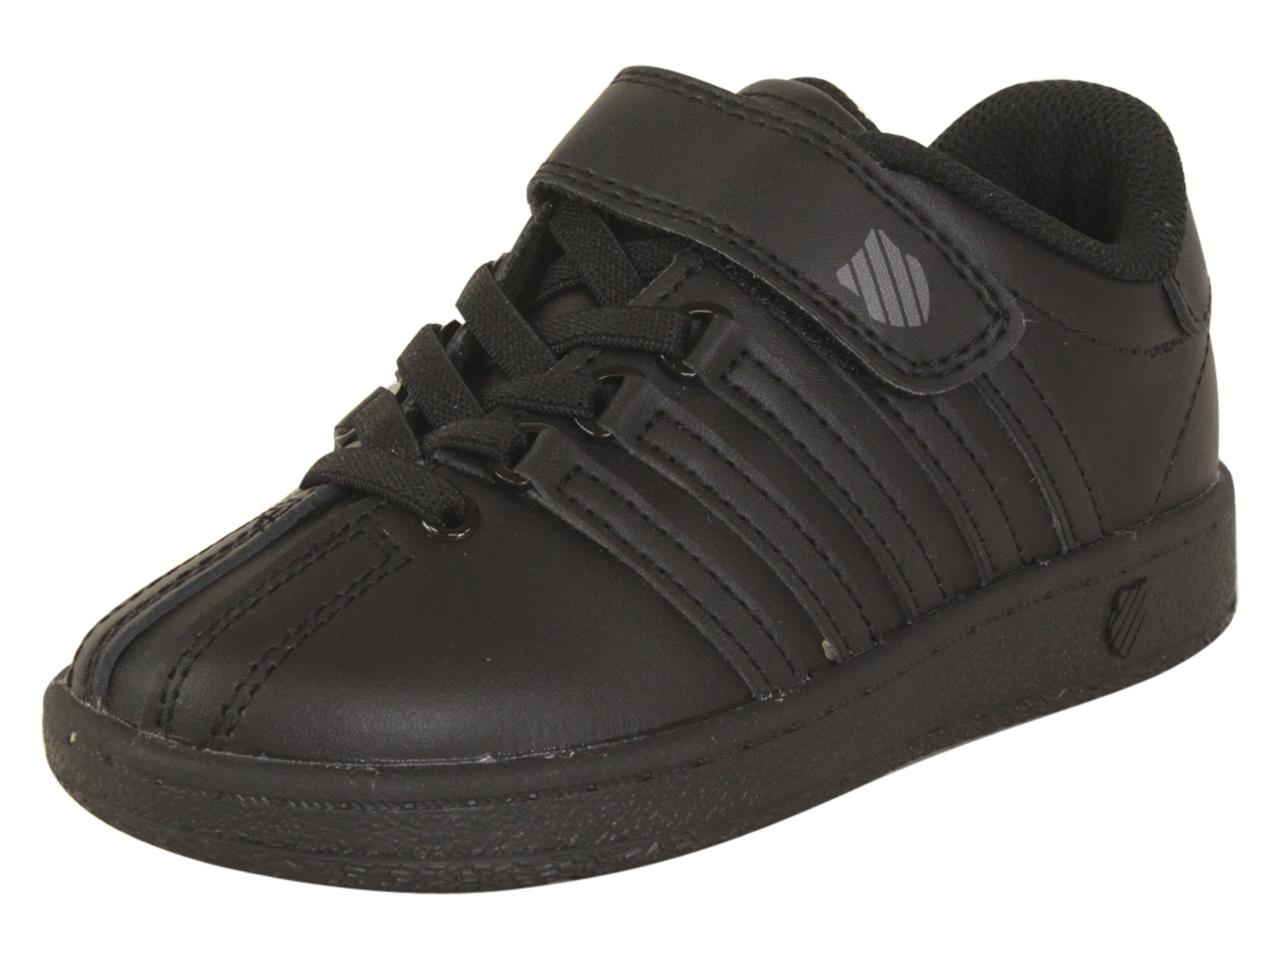 Image of - Black/Black - 4 M US Toddler